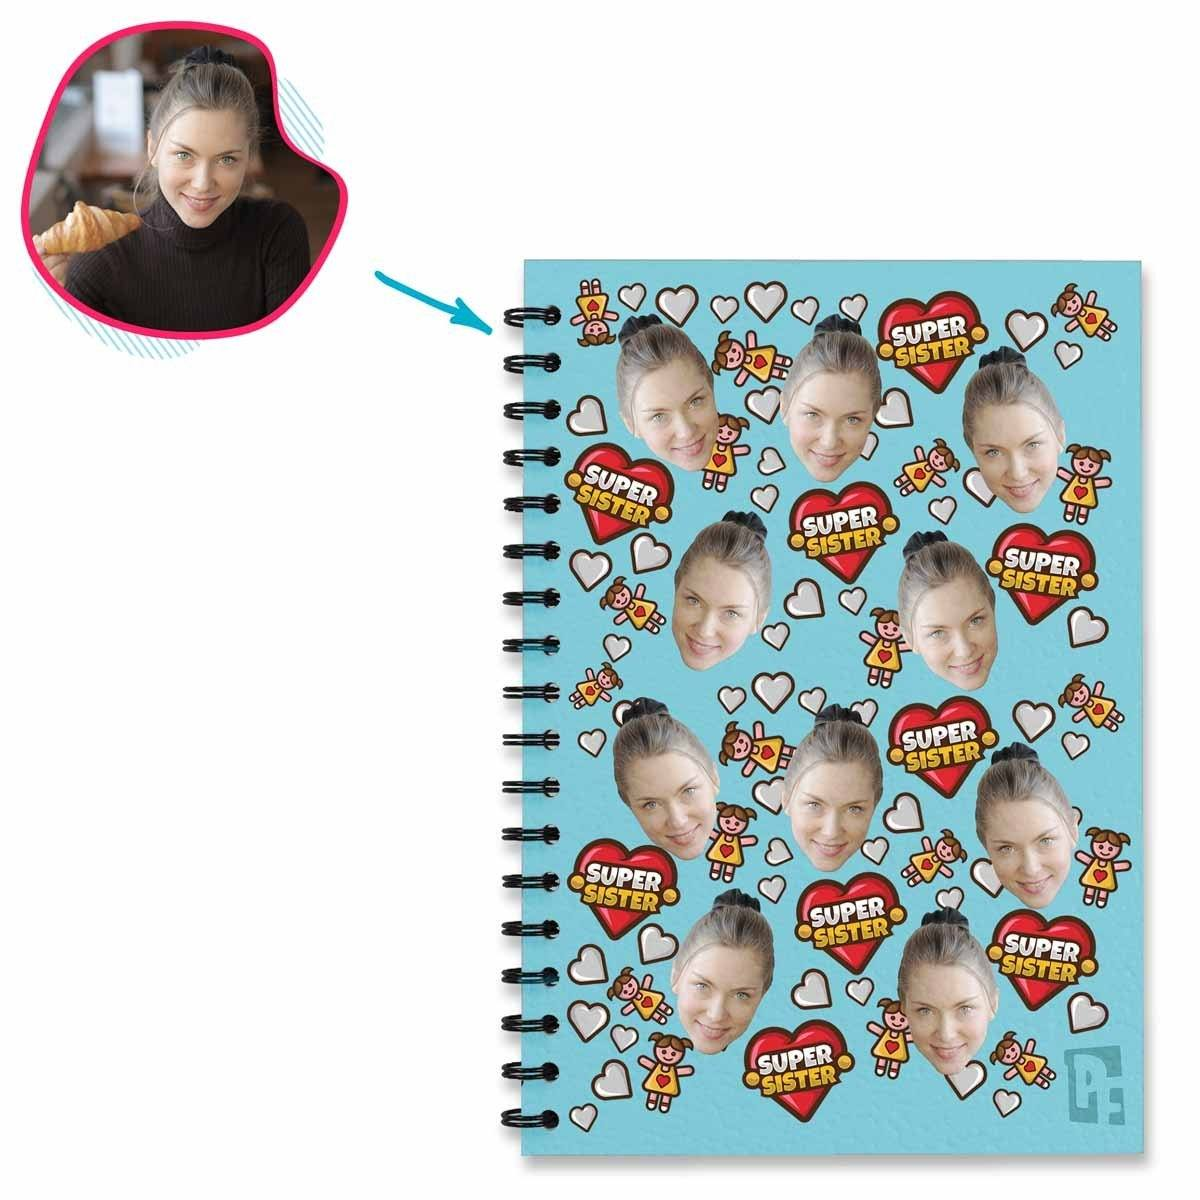 blue Super Sister Notebook personalized with photo of face printed on them